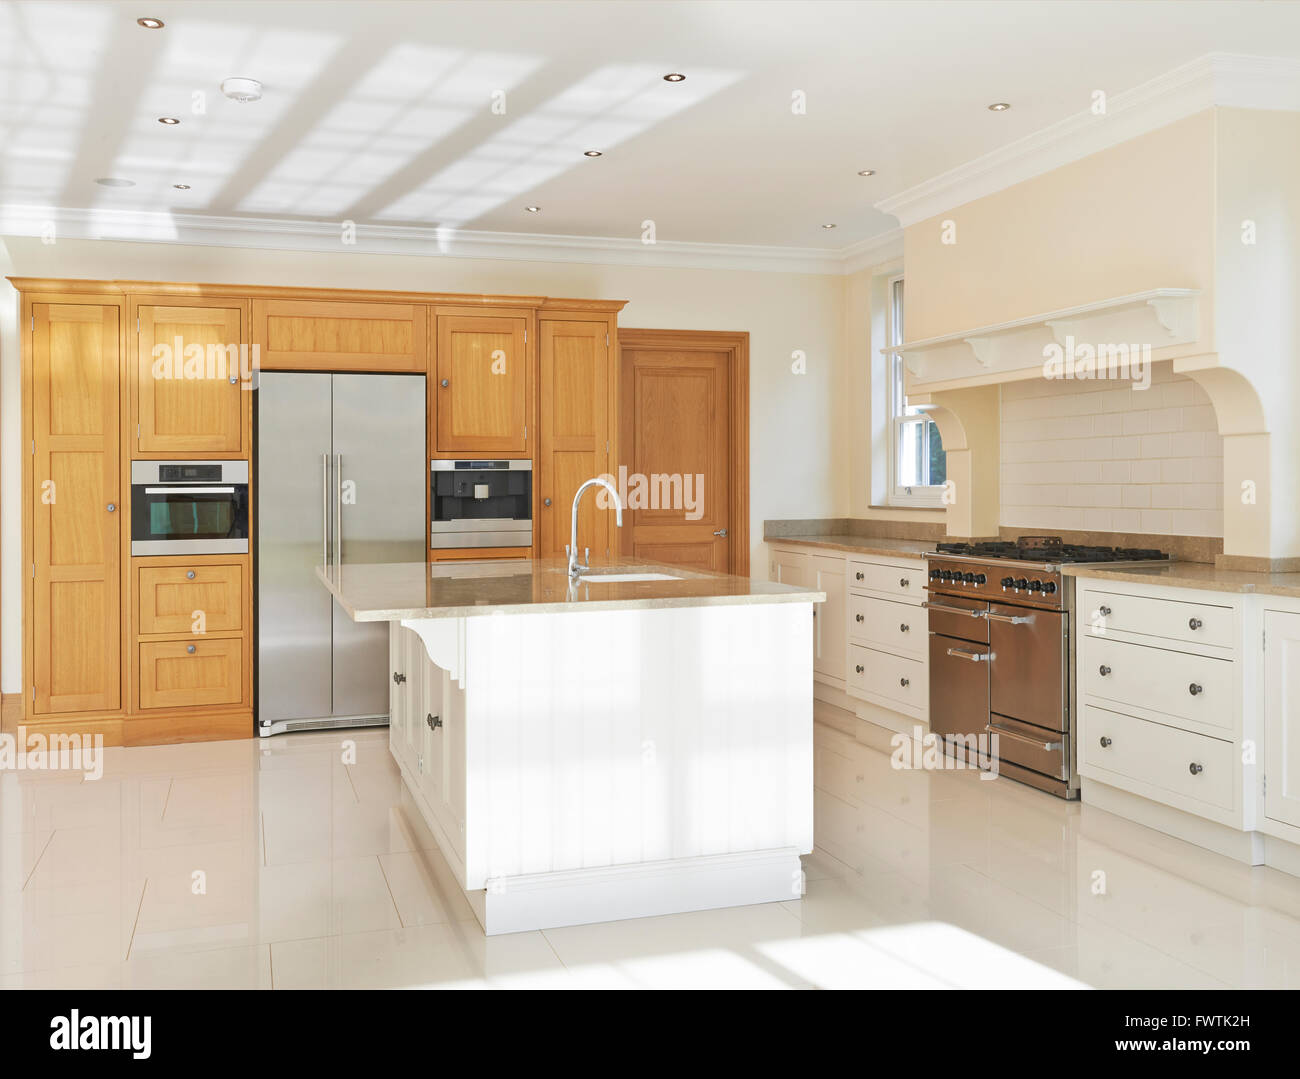 Luxury Fitted Kitchen In House - Stock Image